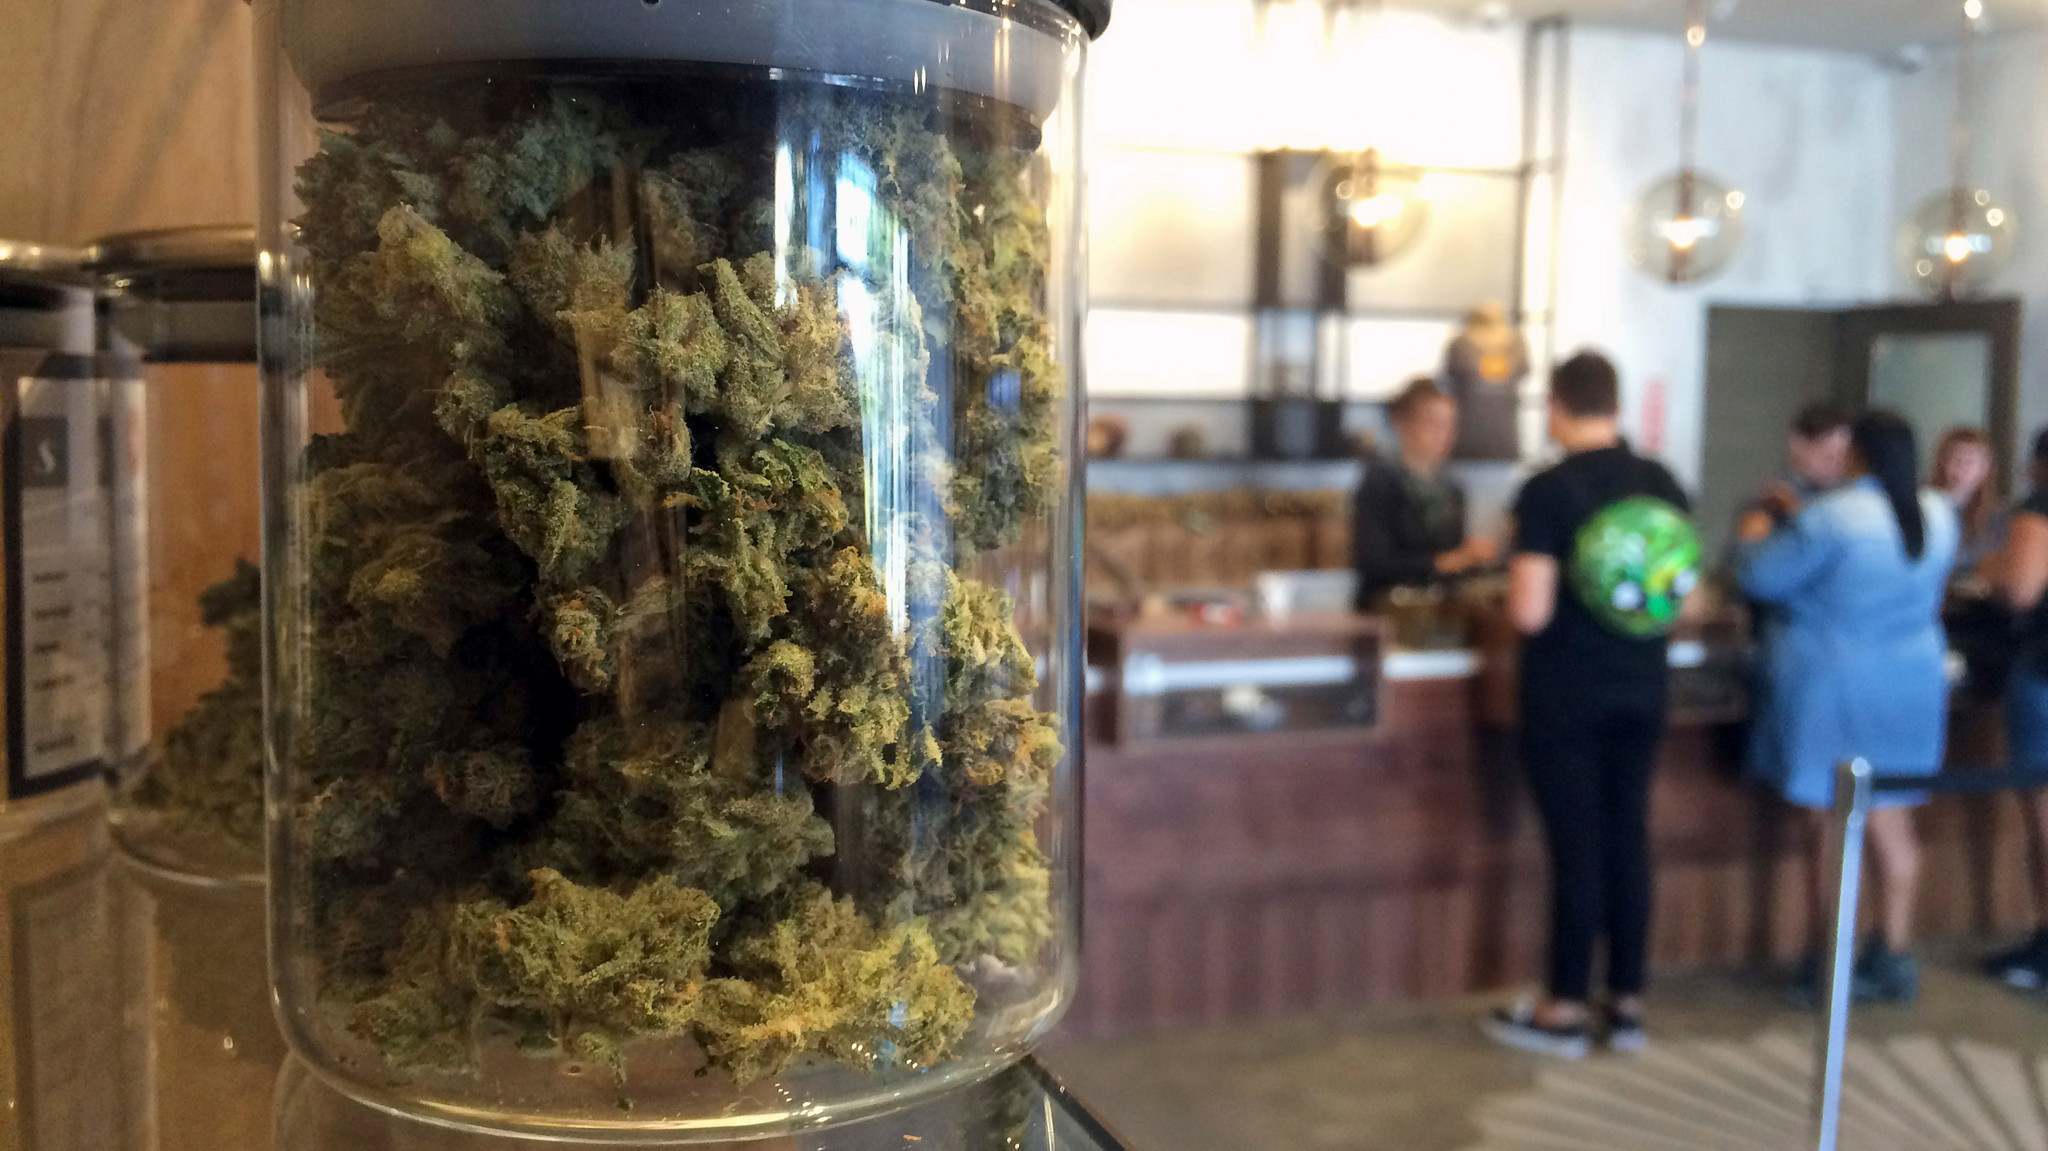 Customers buy products at a medical marijuana dispensary in San Francisco in April. (Haven Daley / Associated Press)